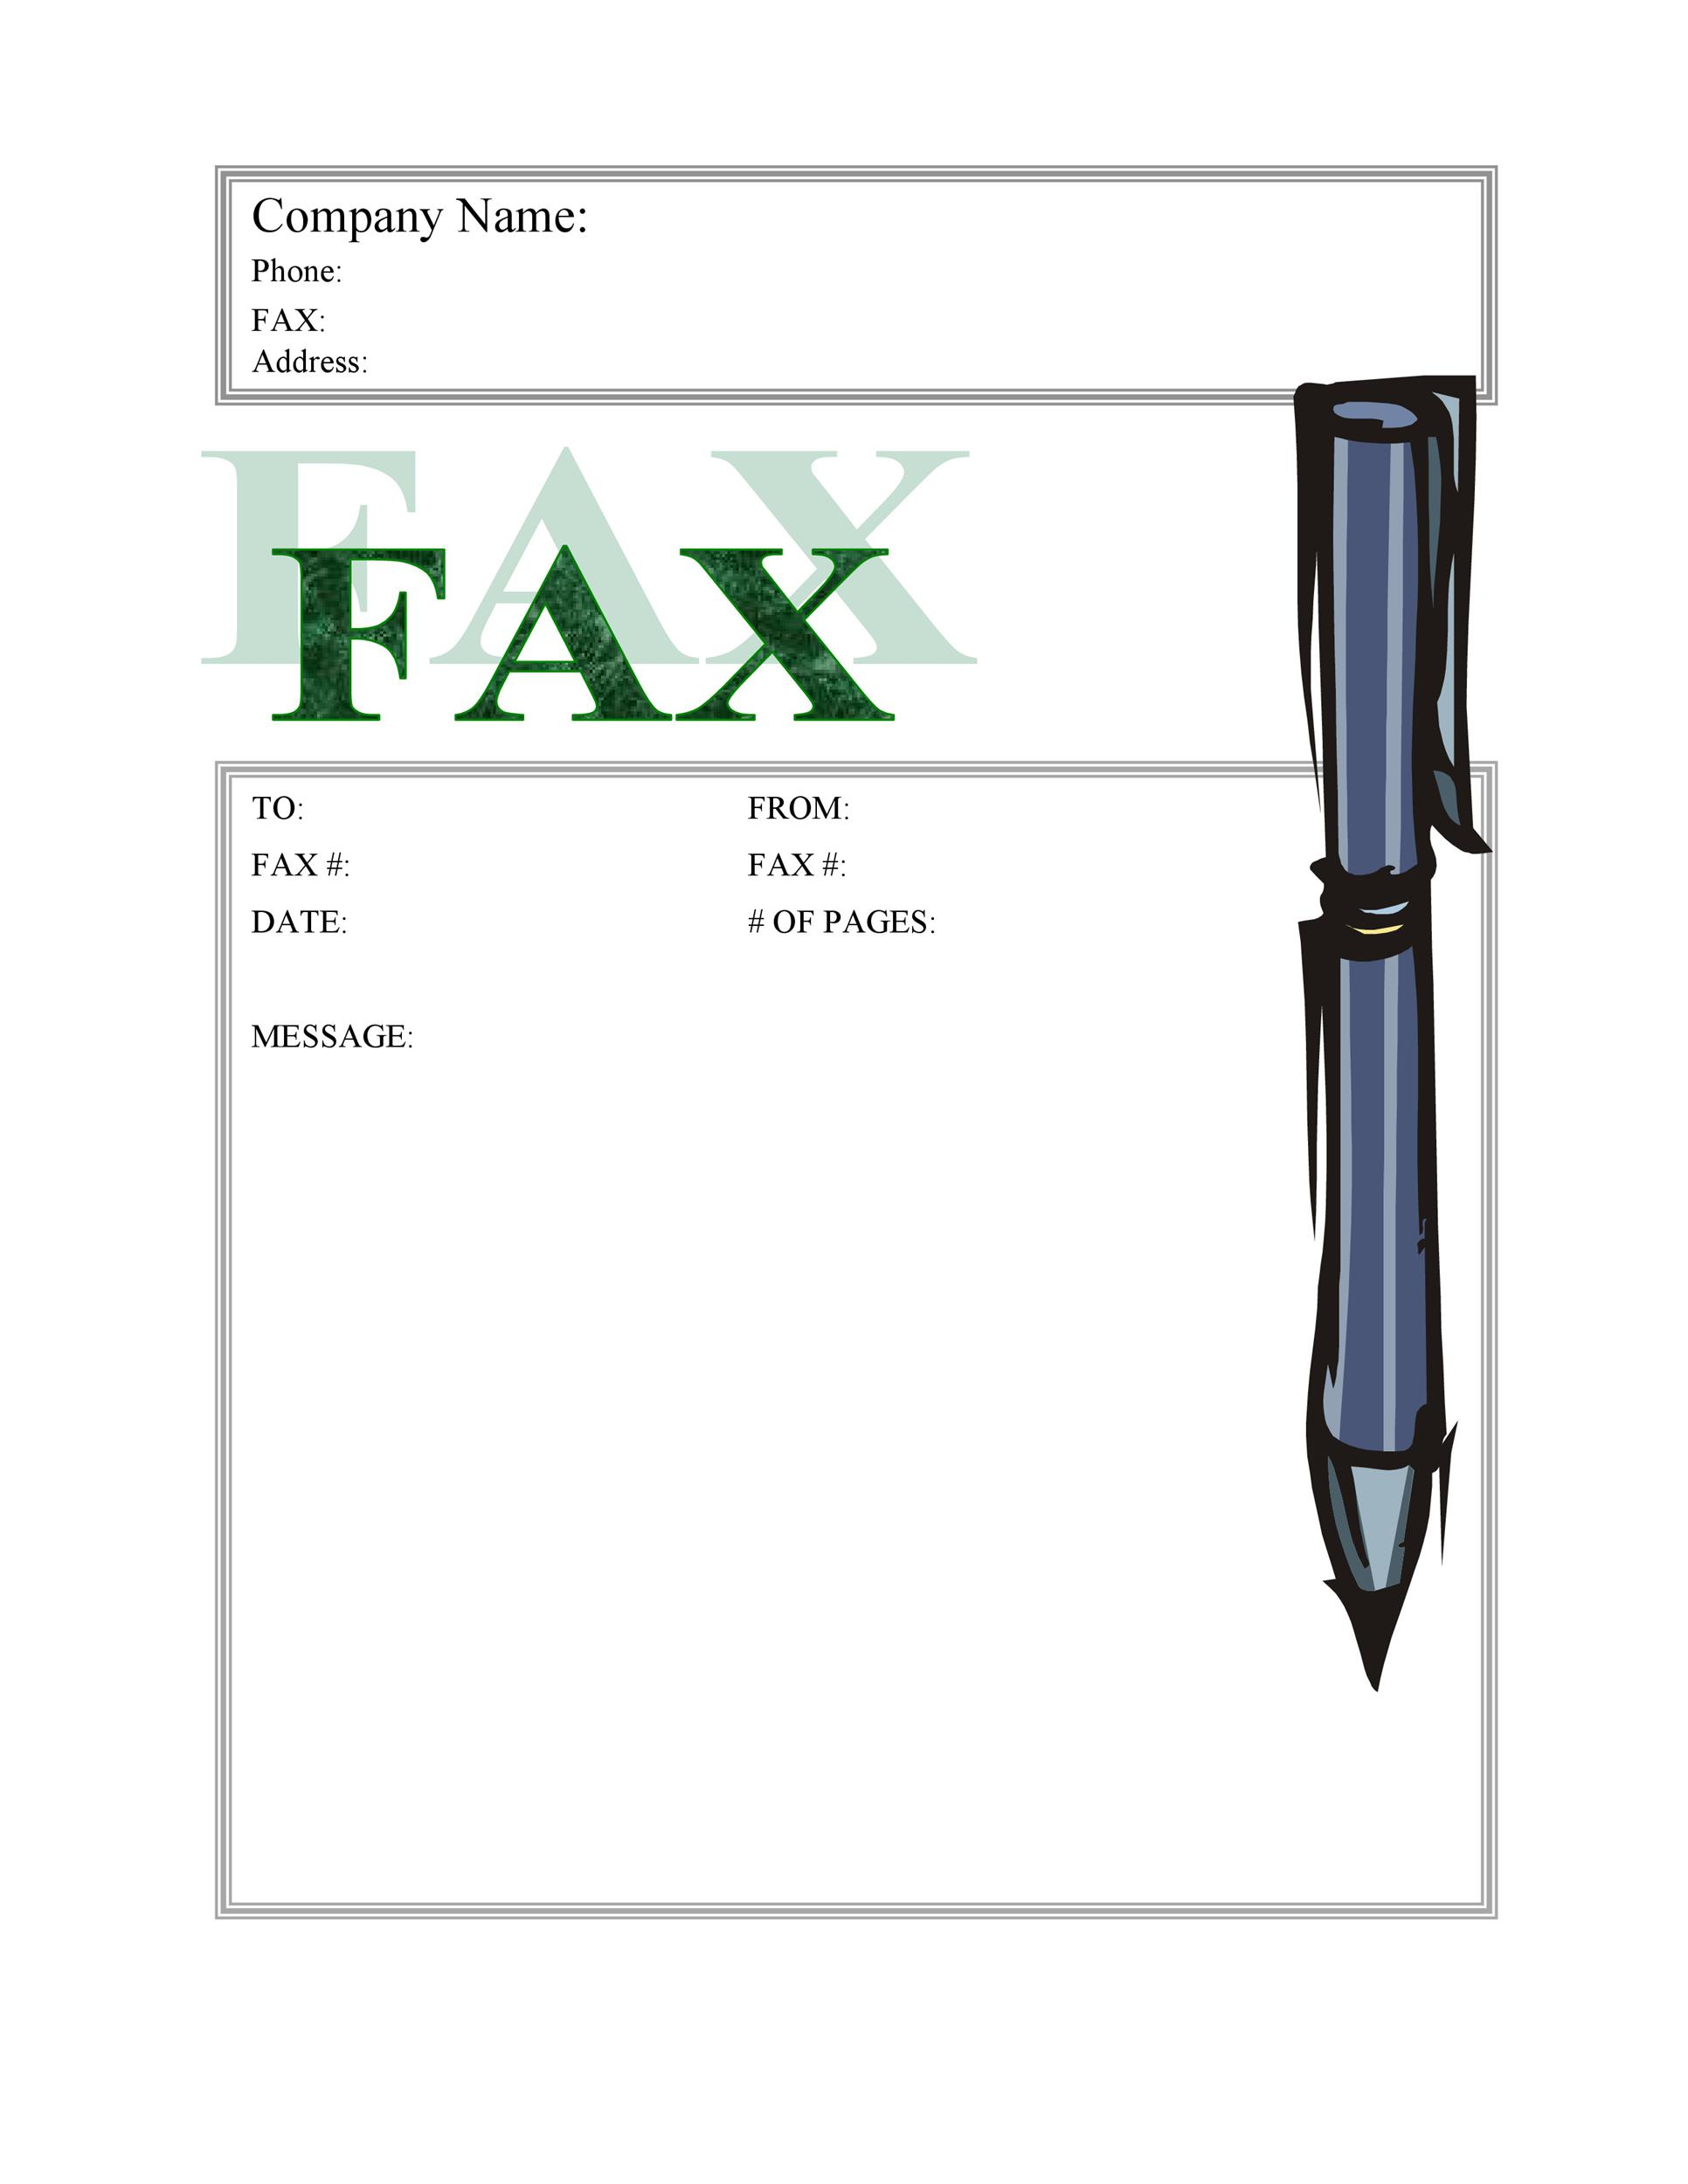 printable fax cover sheet template 14 - Examples Of Fax Cover Letters